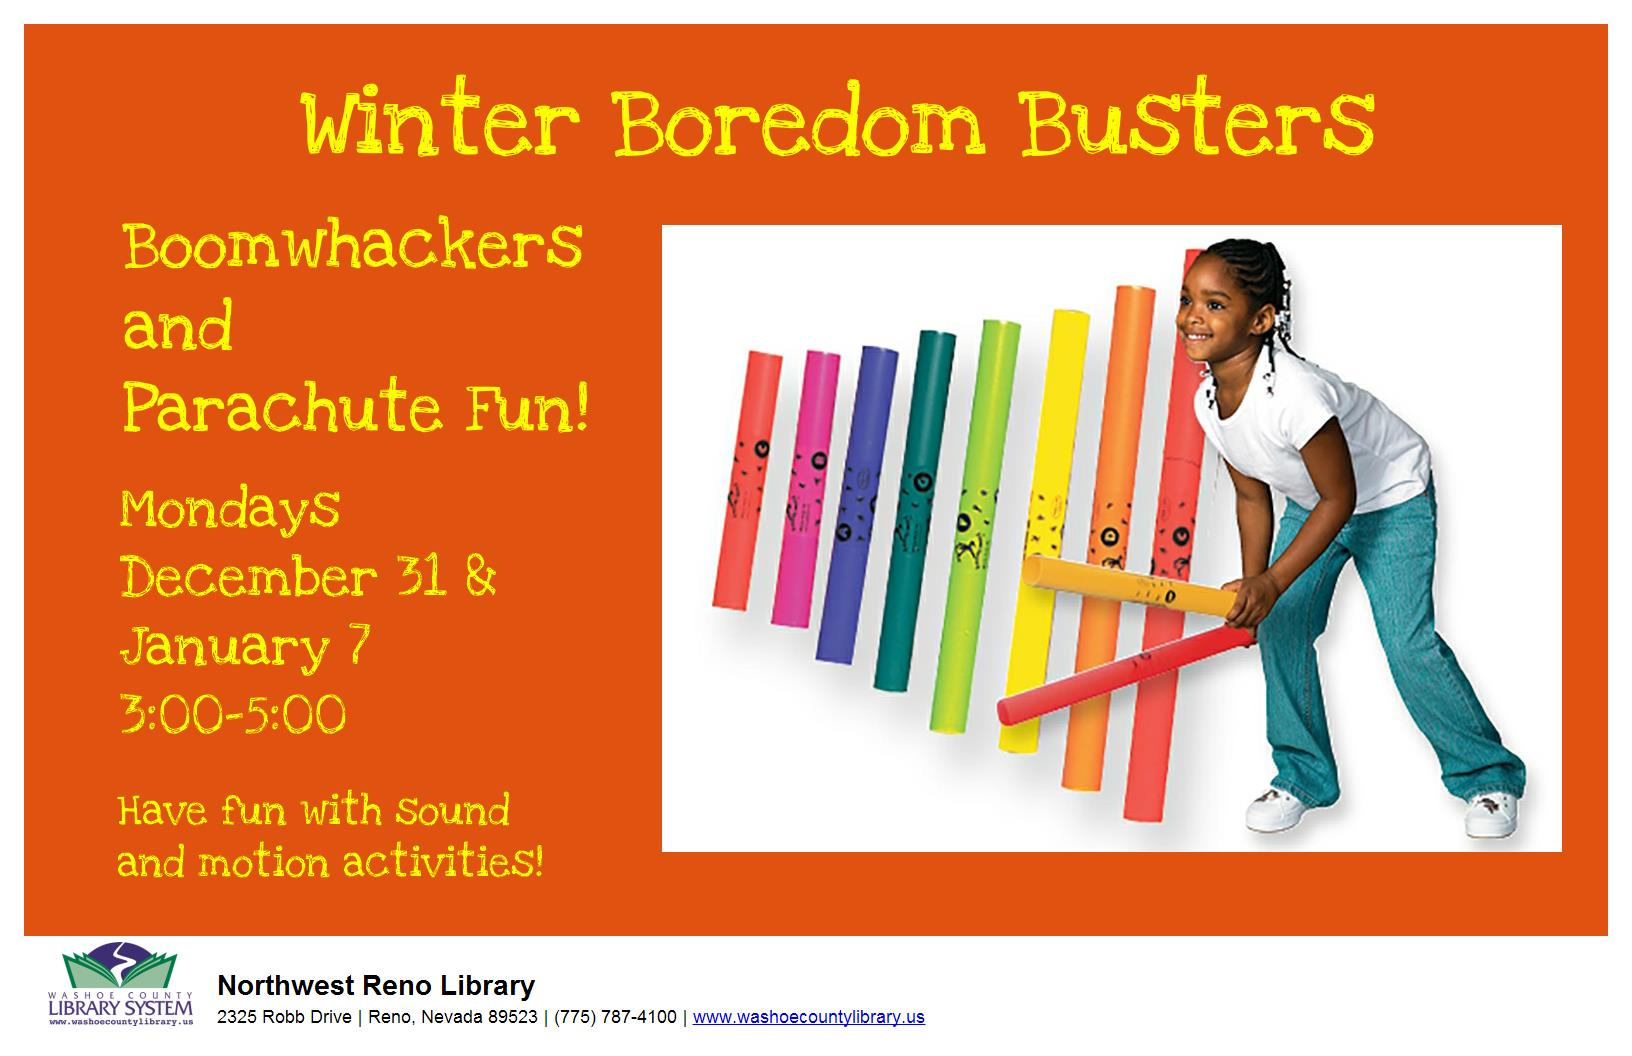 Boredom Busters: Boomwhackers® and Parachute Fun